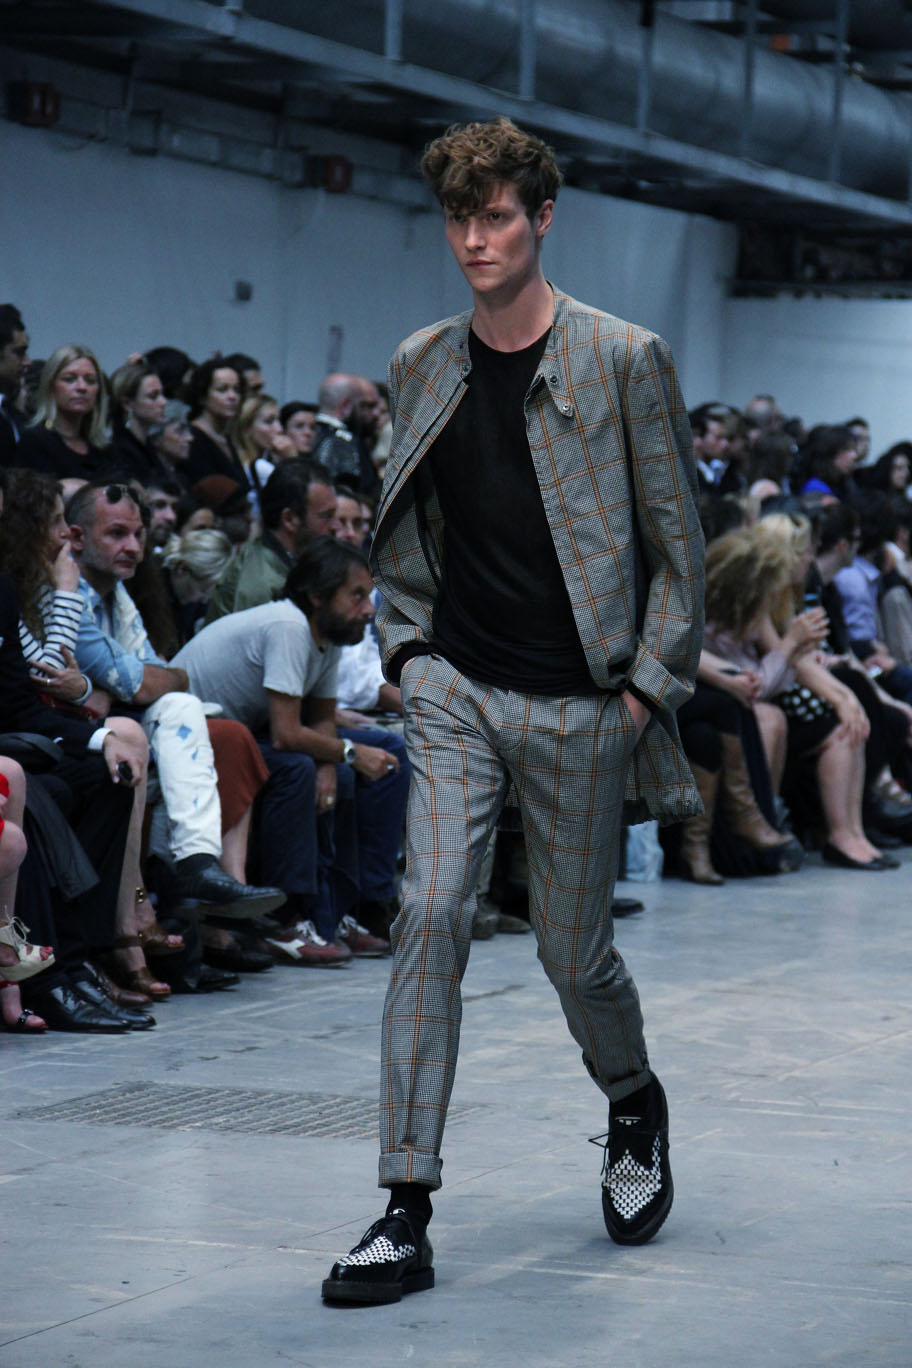 costume-national-homme-spring-summer-2012-men-collection-milano-fashion-week-2012-costume-national-homme-primavera-estate-costume-national-homme-fashion-show-catwalk-2012